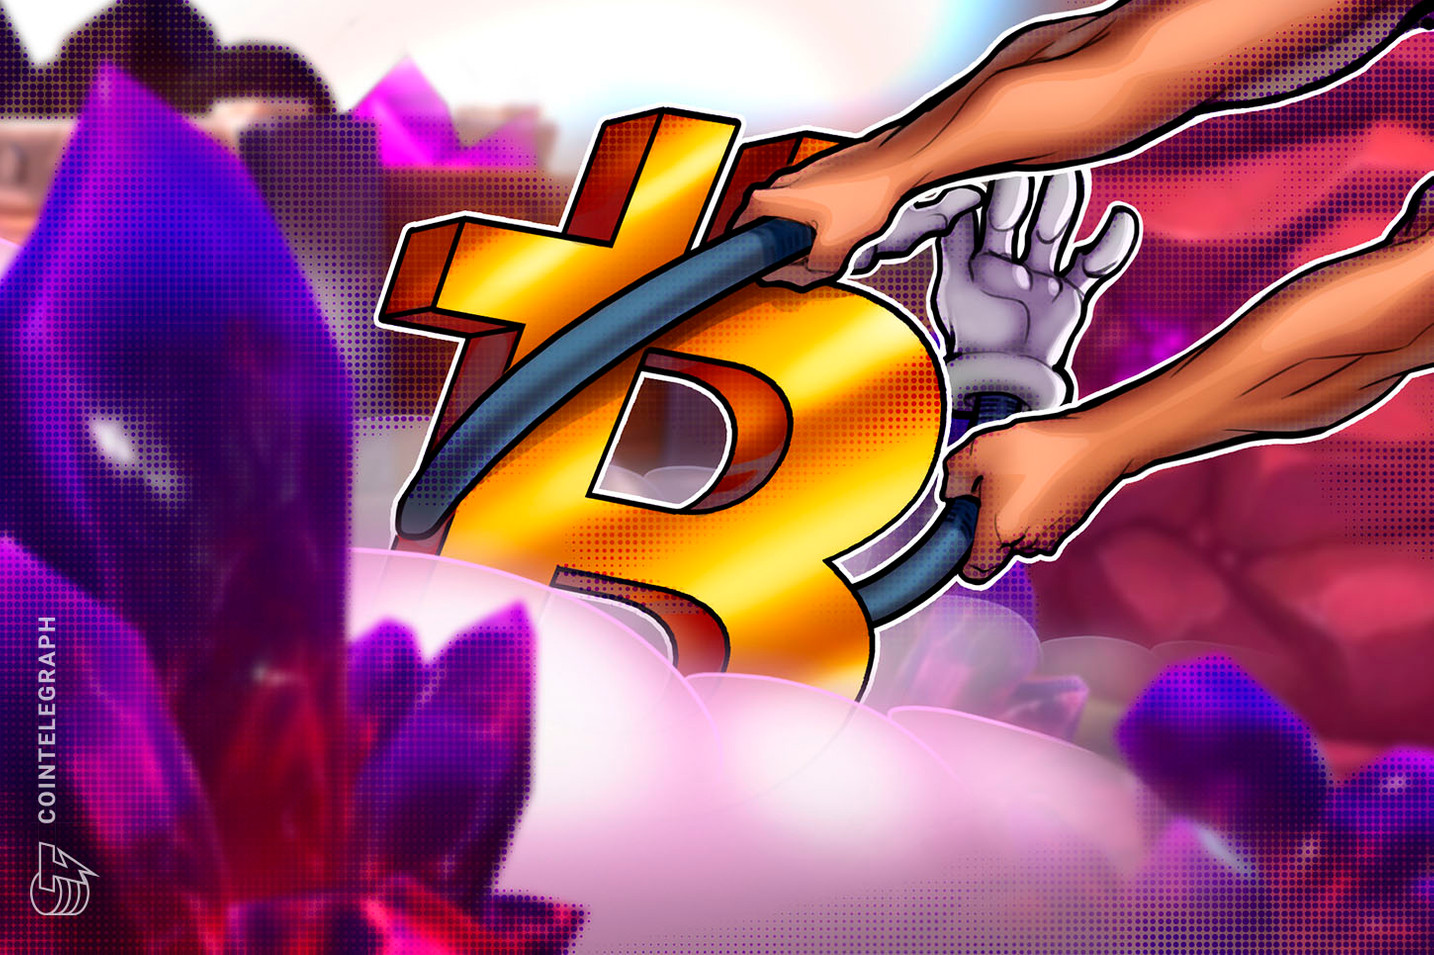 Miners affiliated with Bitcoin's largest mining pool may be behind the recent drop